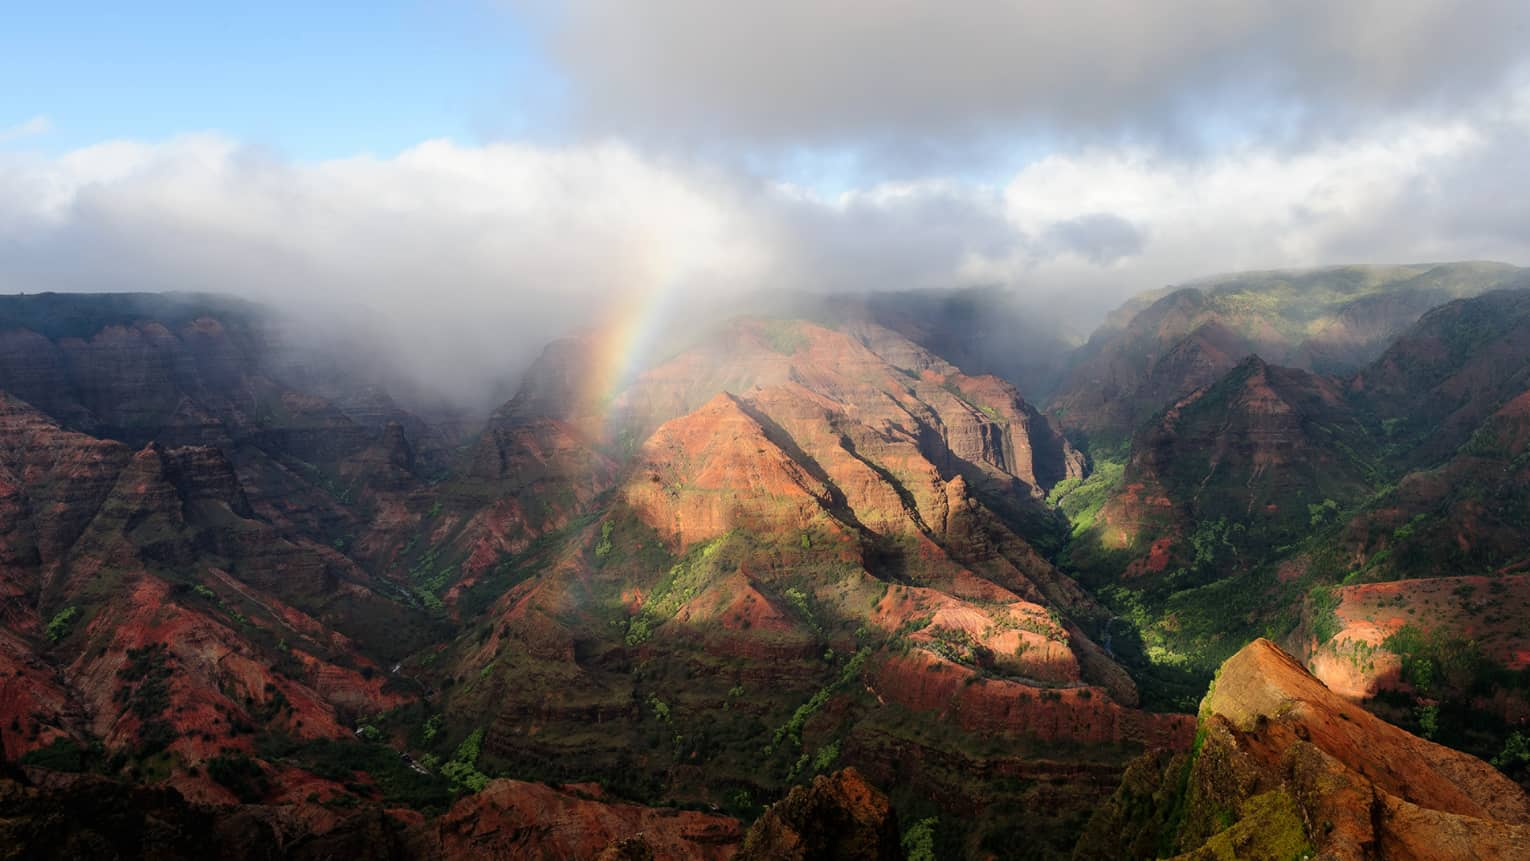 Sweeping views of The Waipi'o Valley Lookout mountains with clouds, rainbows